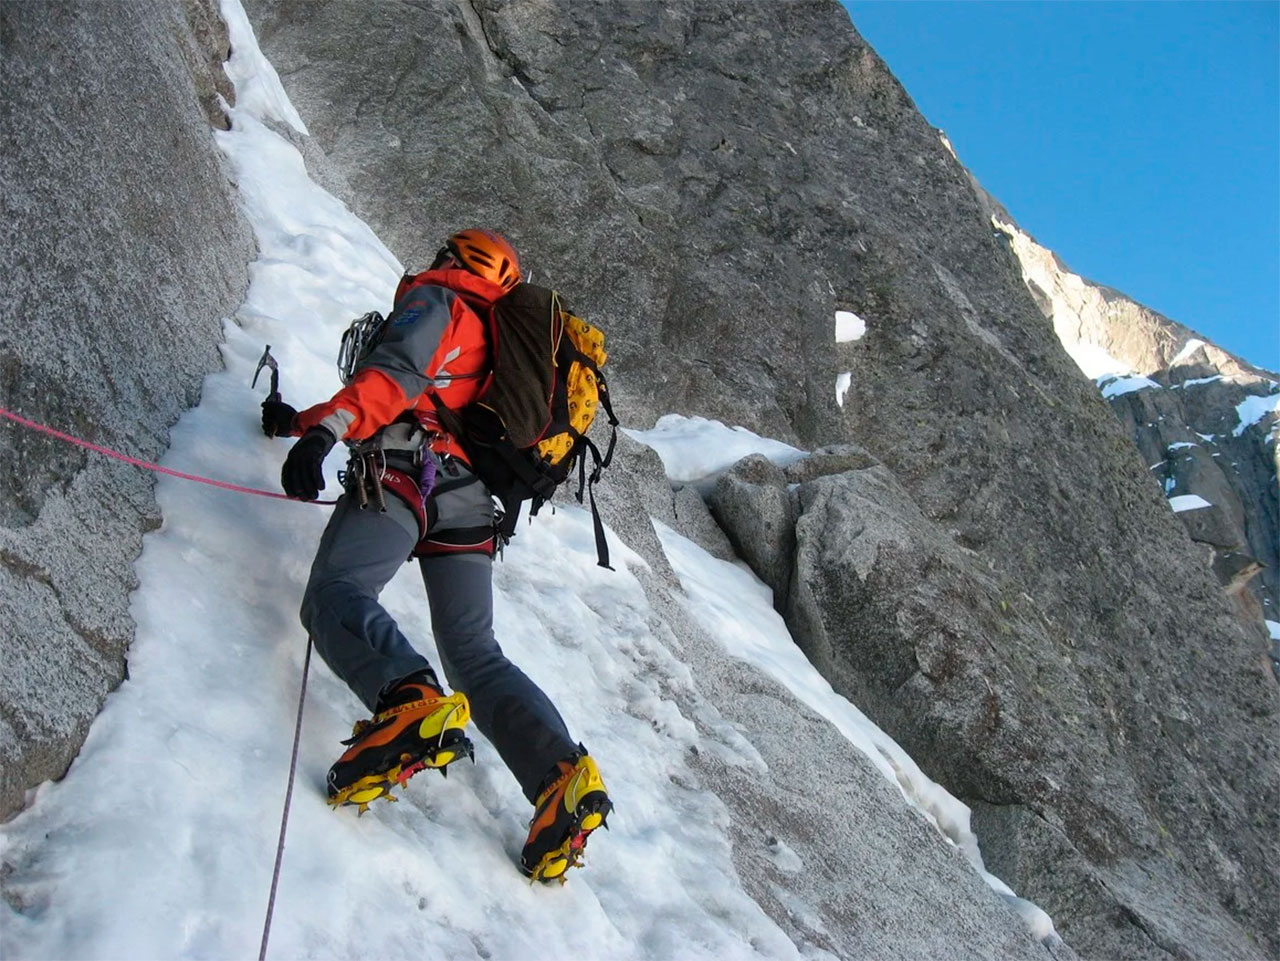 mountain climbing expeditions challenged - HD1200×900